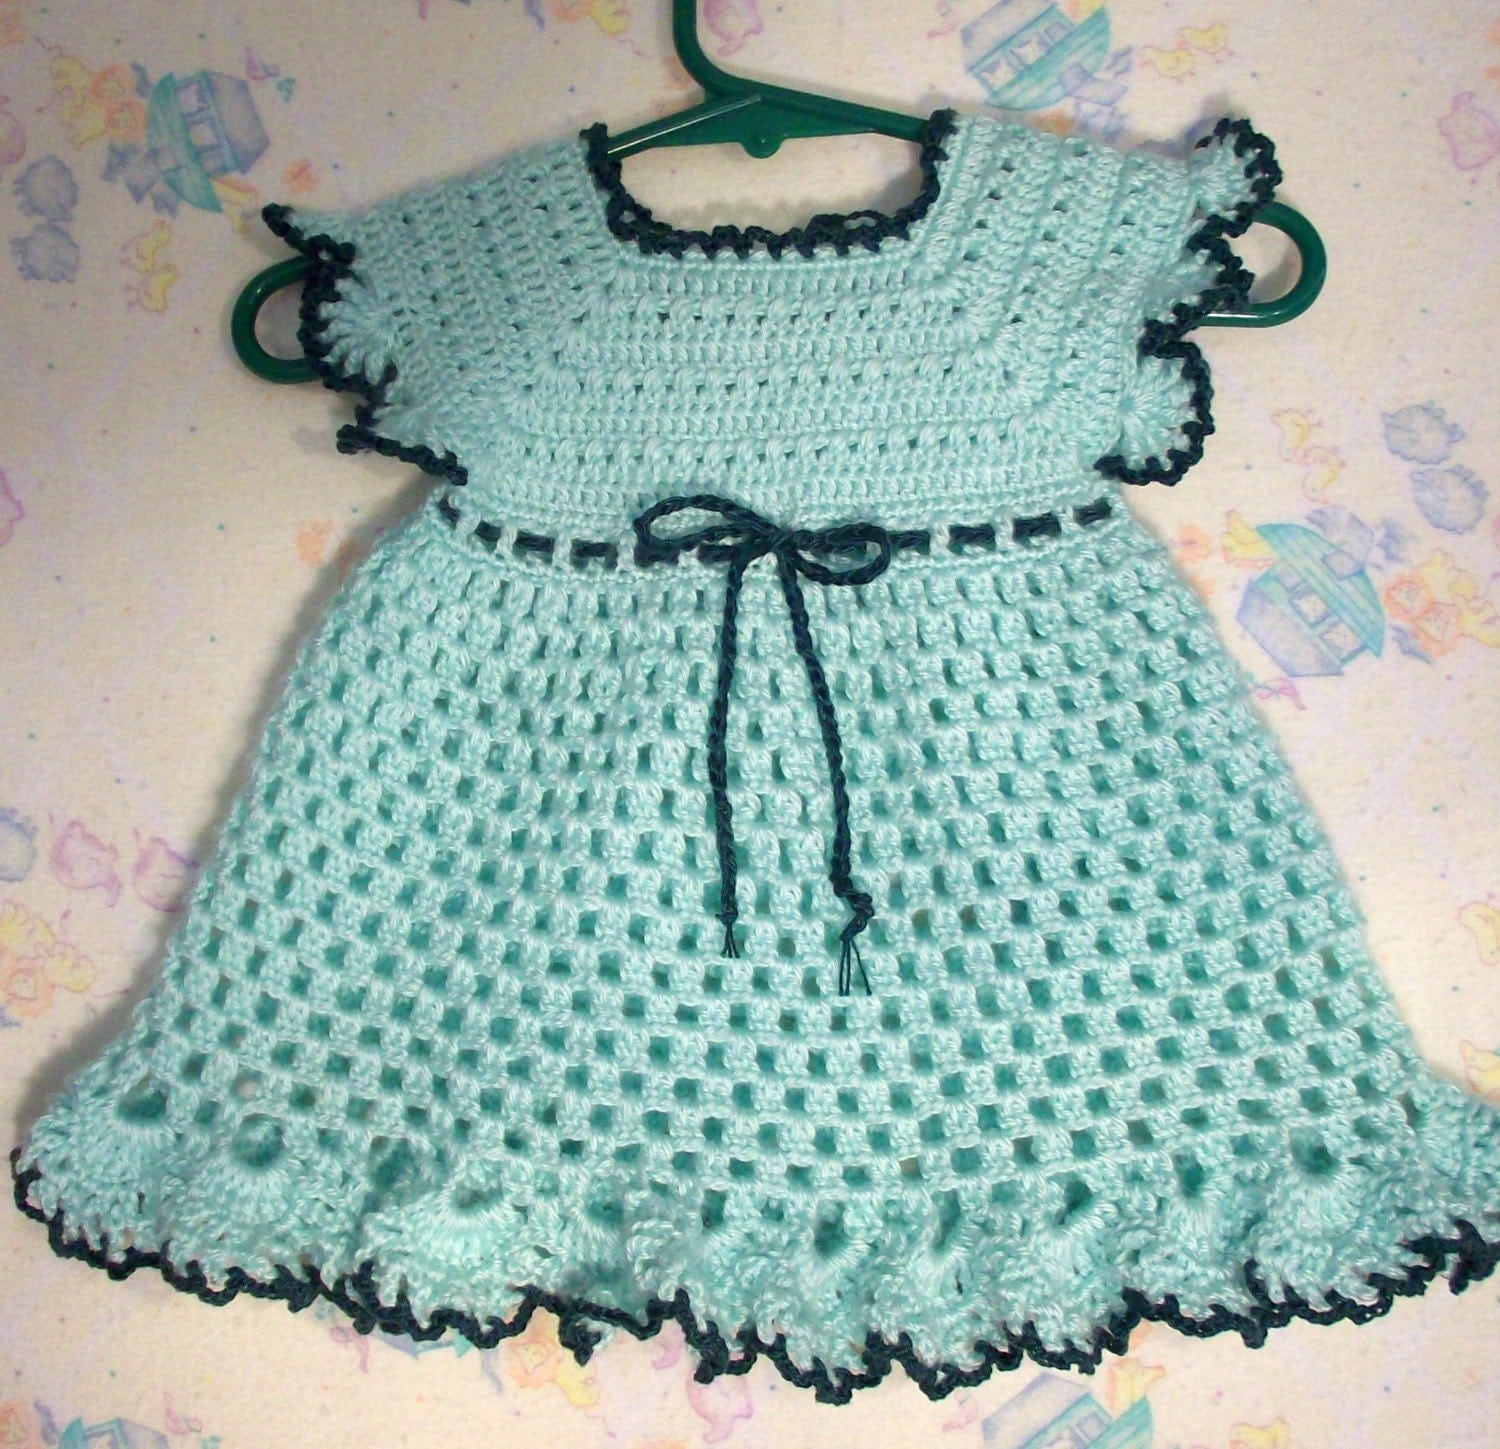 Crochet Baby Dress - Solomon's Knot - YouTube